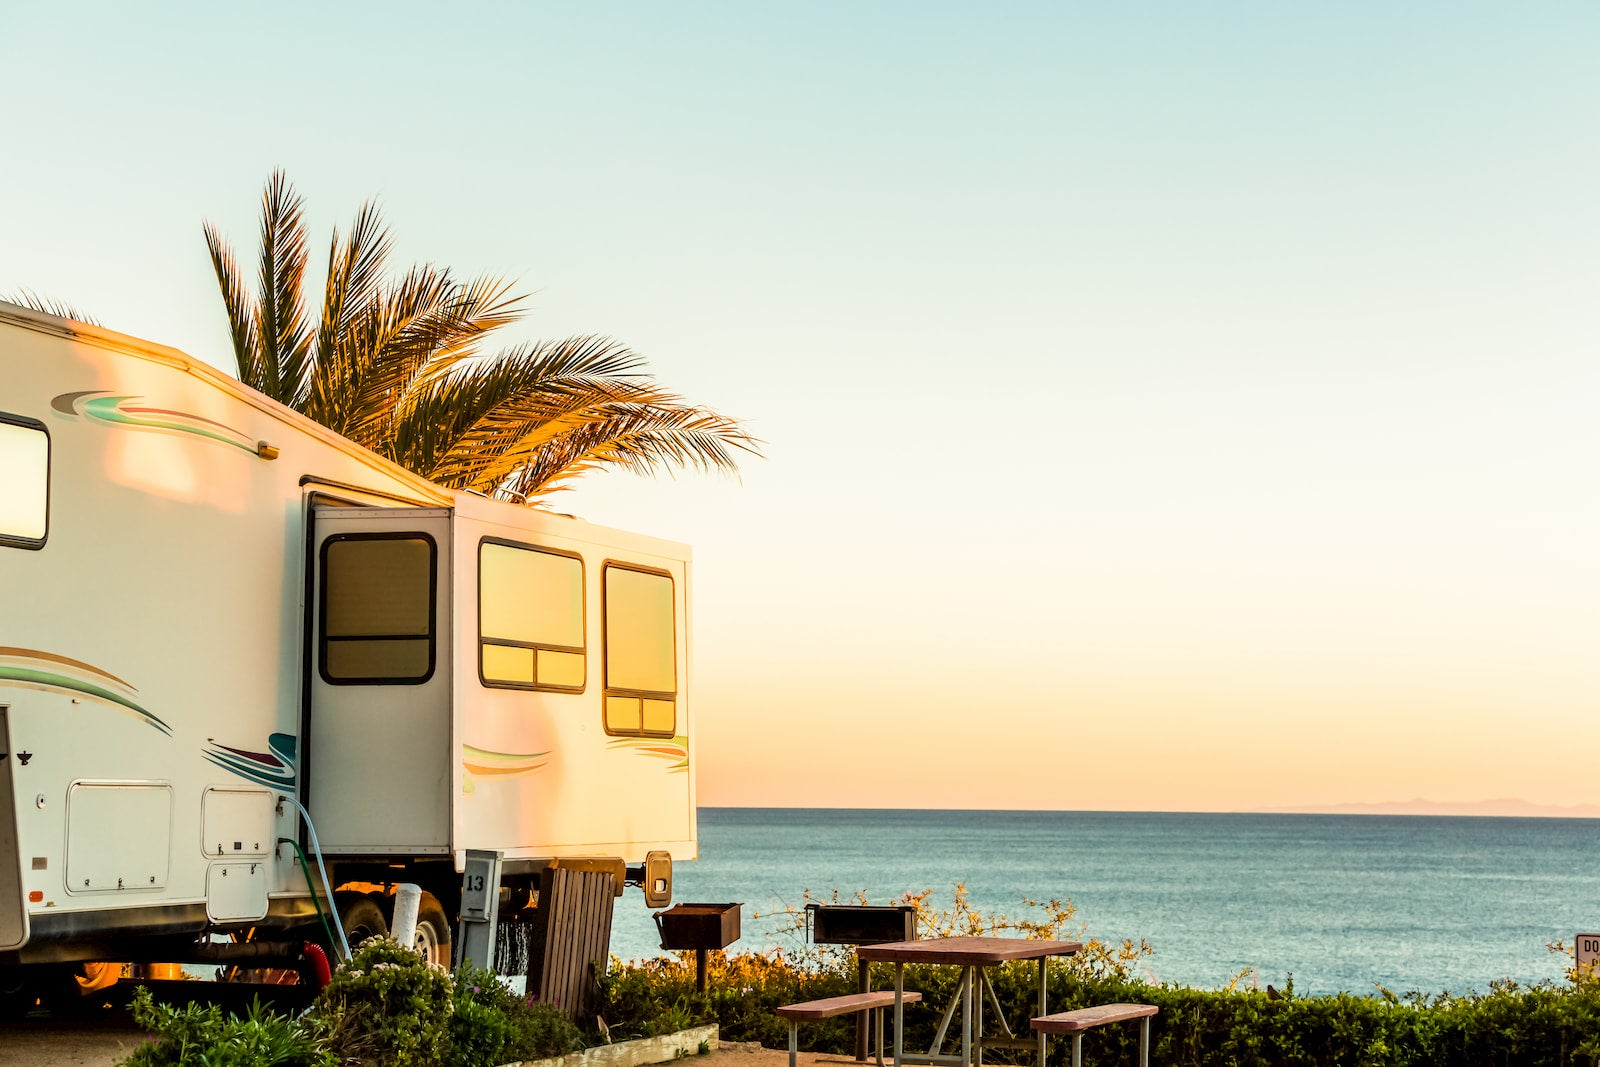 RV with slide out side parked on the beach.